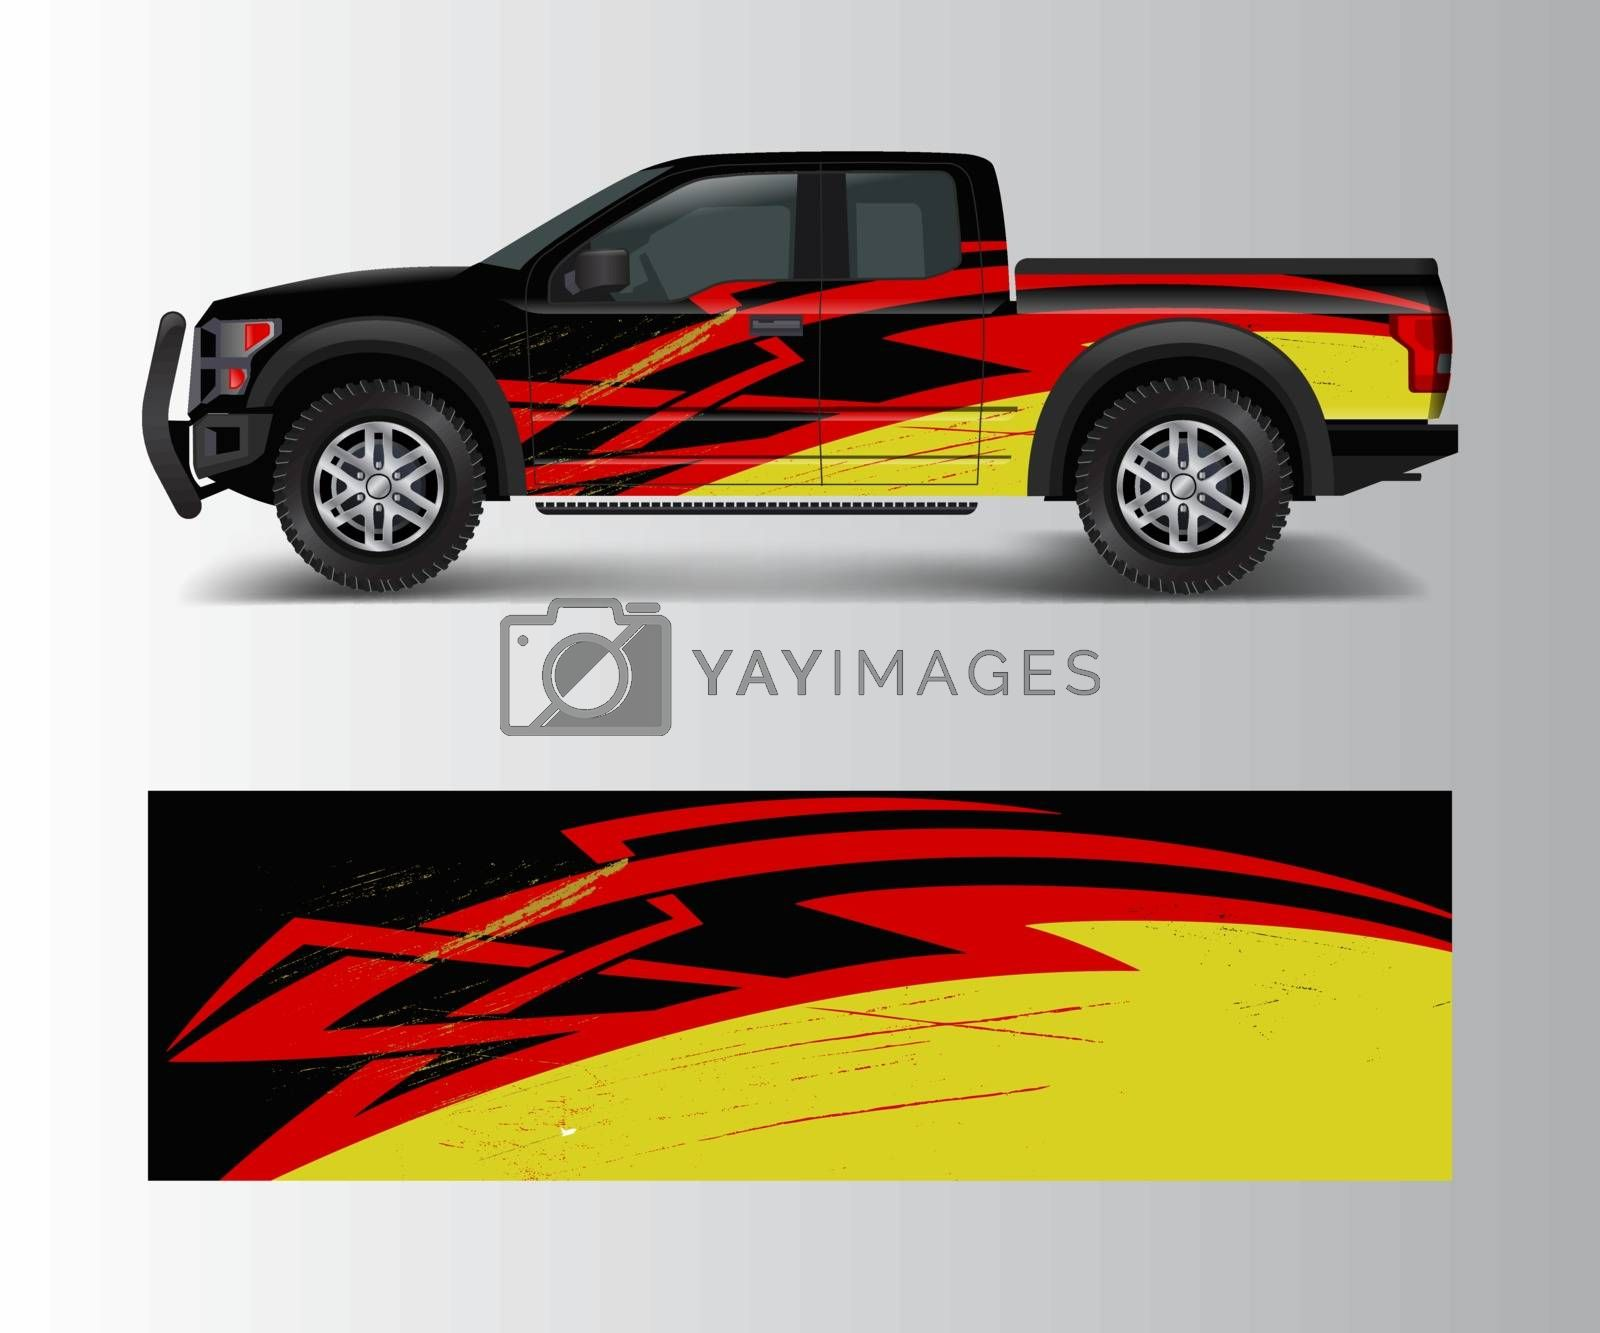 truck and cargo van wrap vector, Car decal wrap design. Graphic abstract stripe designs for vehicle, race, offroad, adventure and livery car